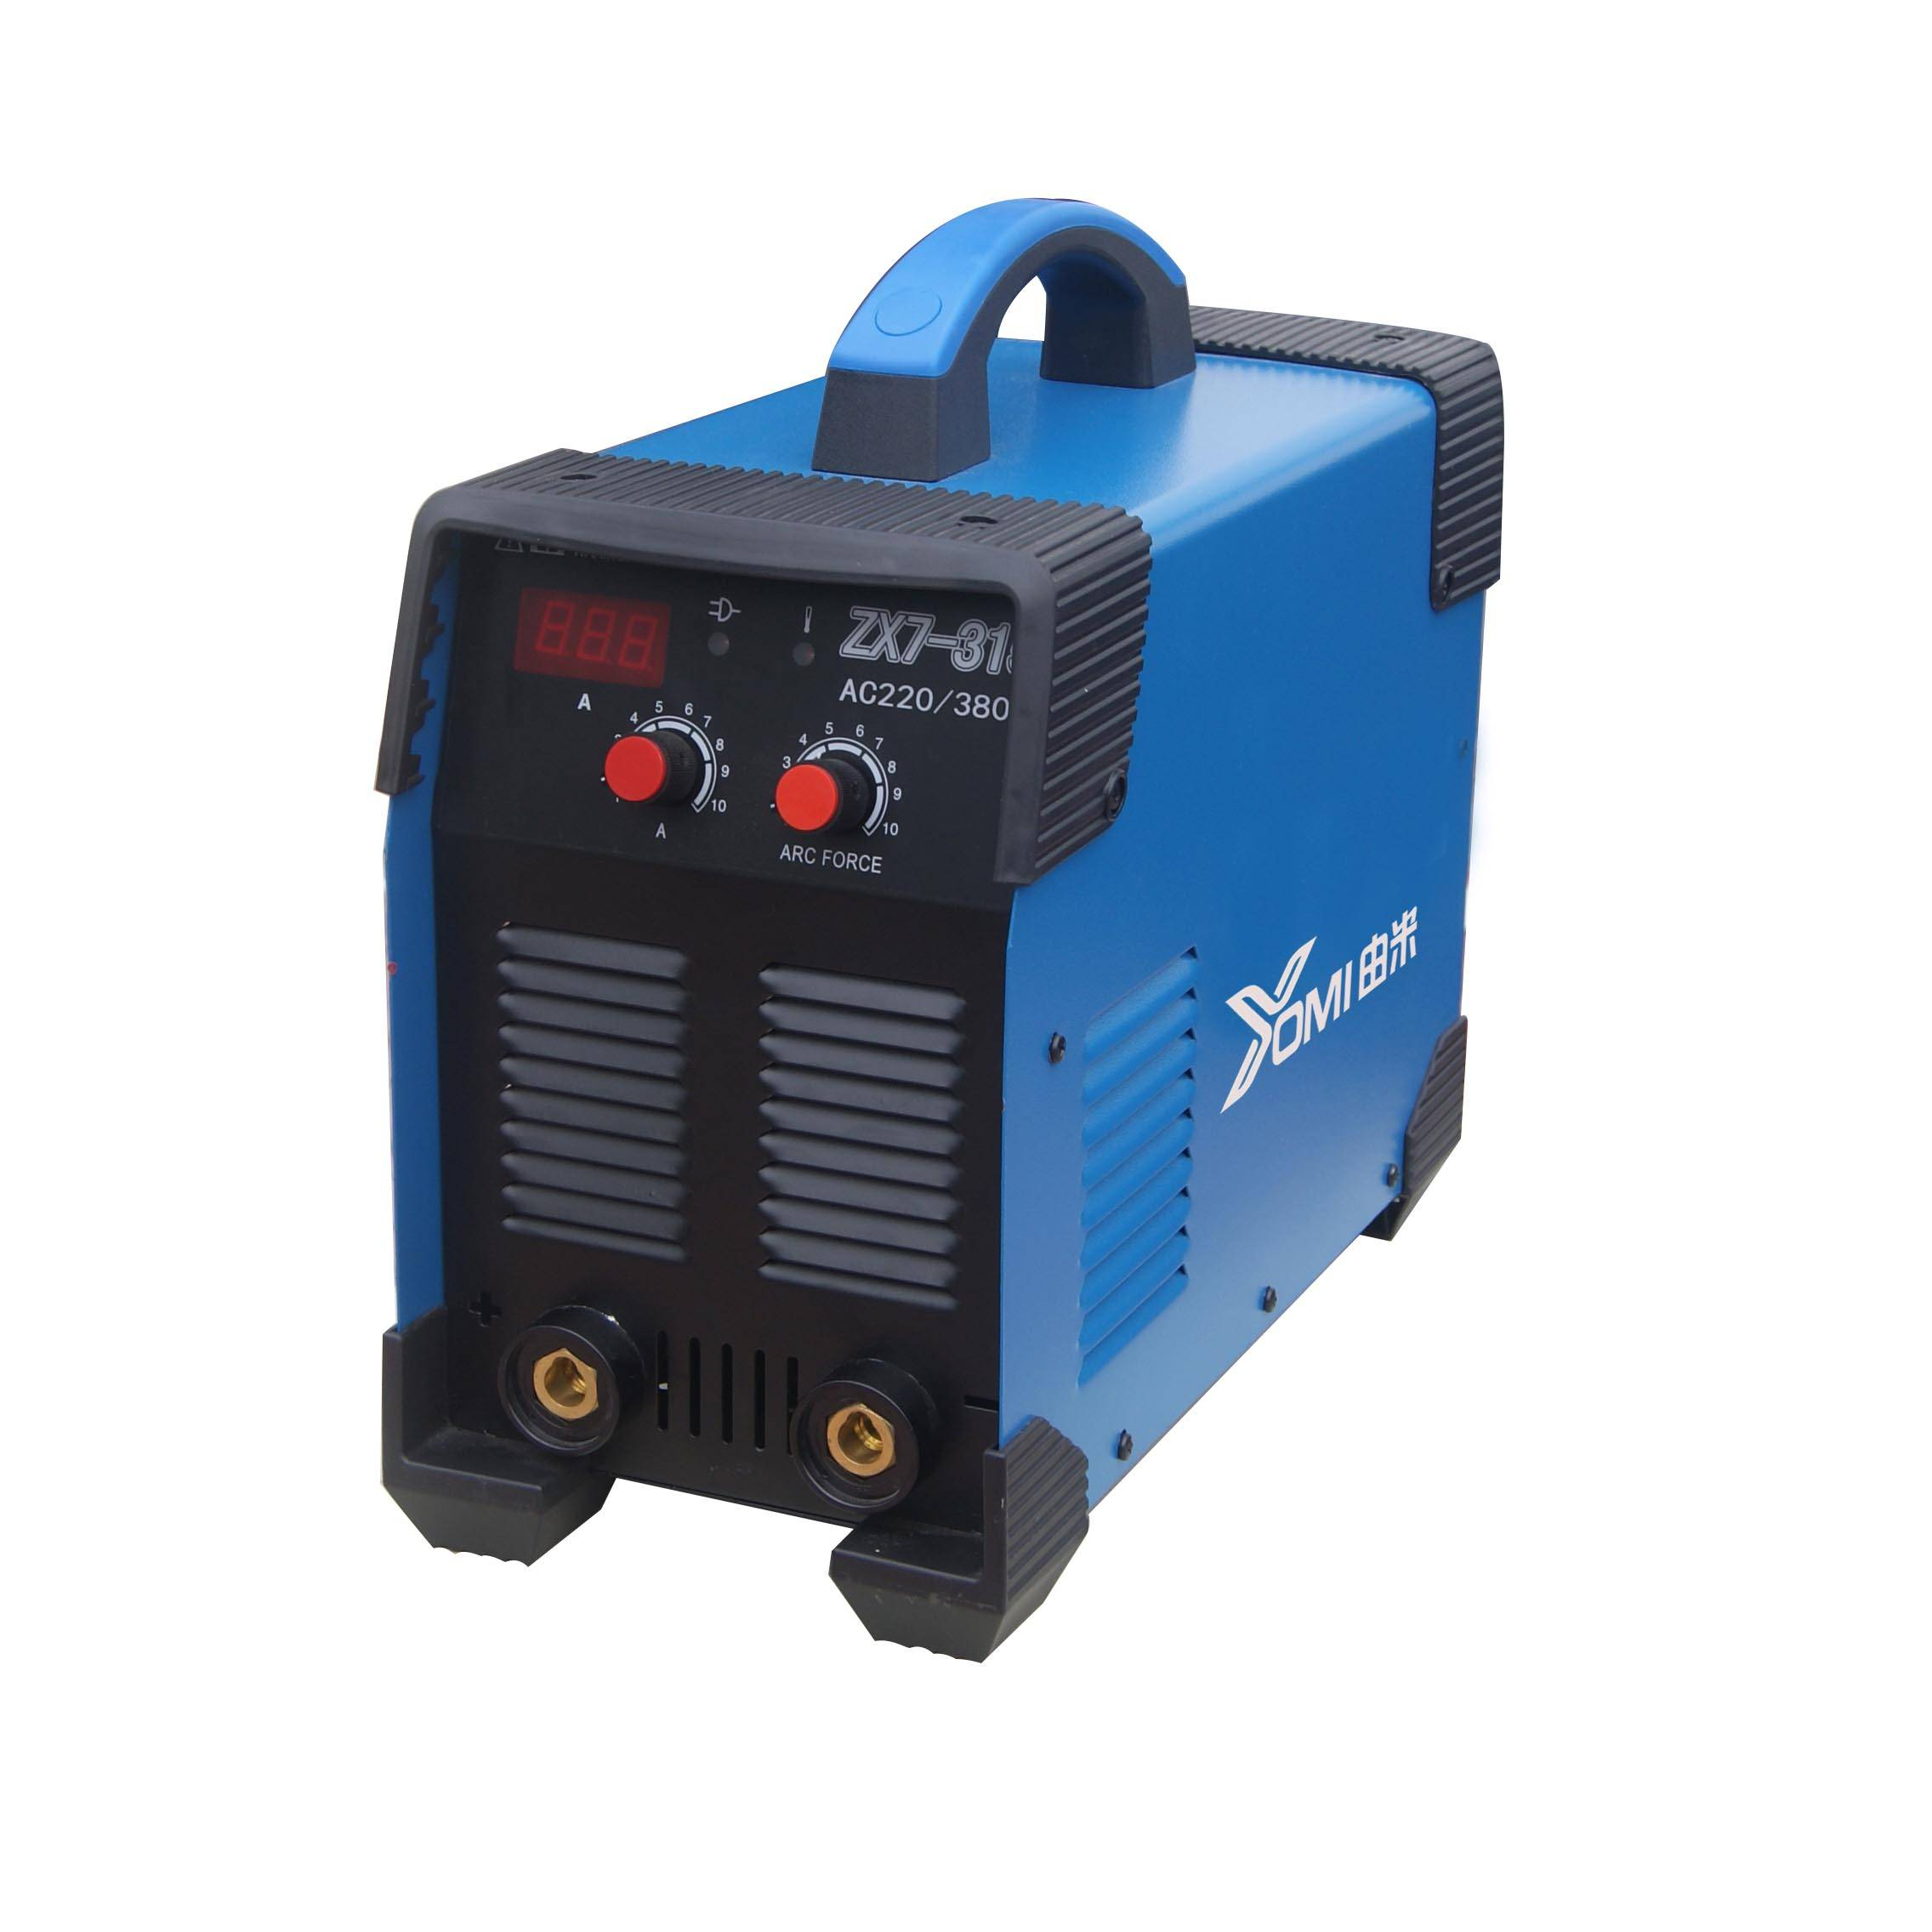 China Factory for 300 Amp Welding Machine -